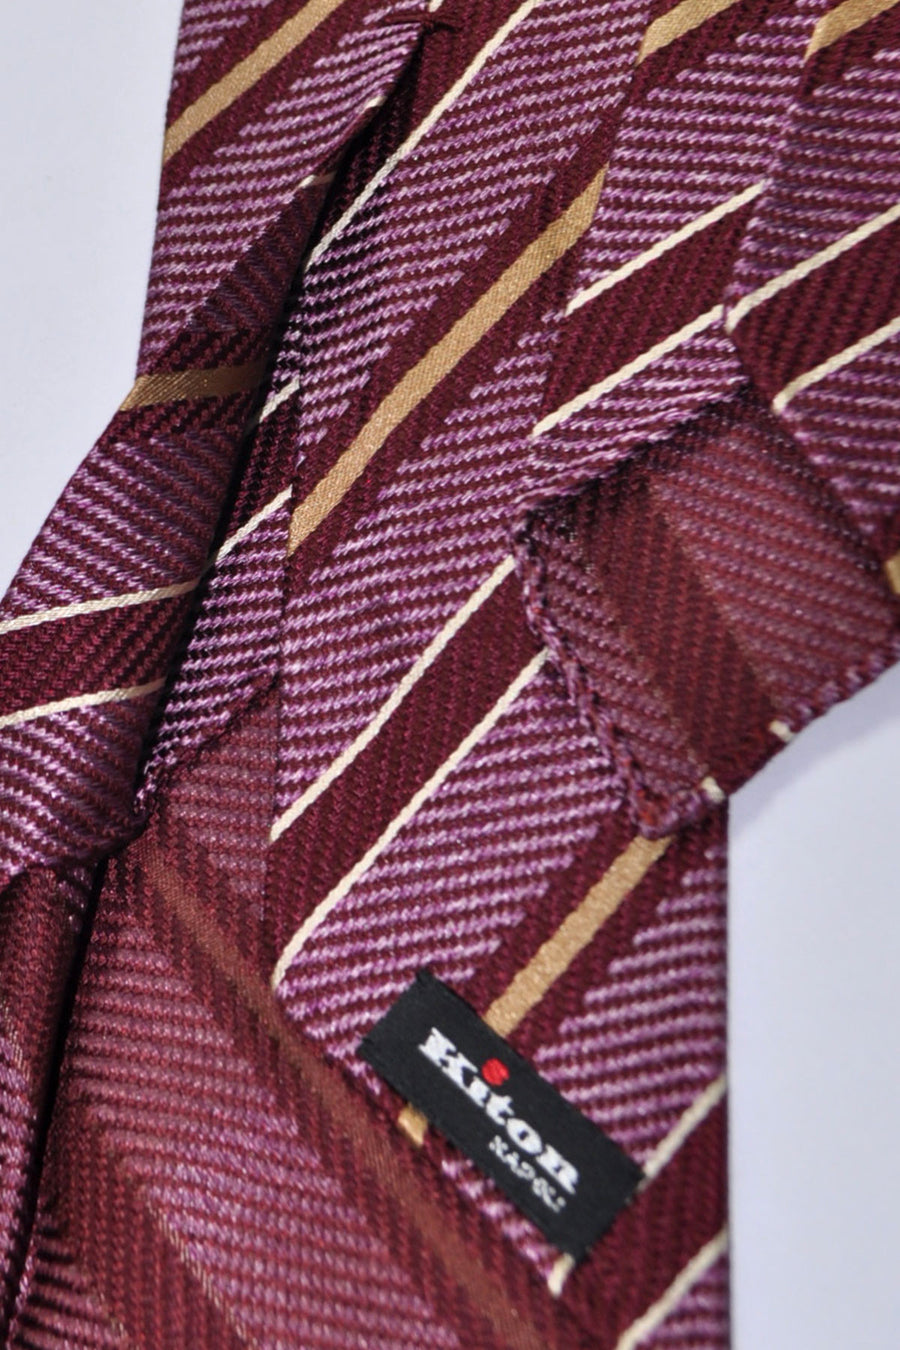 Kiton Tie Purple Gold White Stripes Unlined Sevenfold Necktie